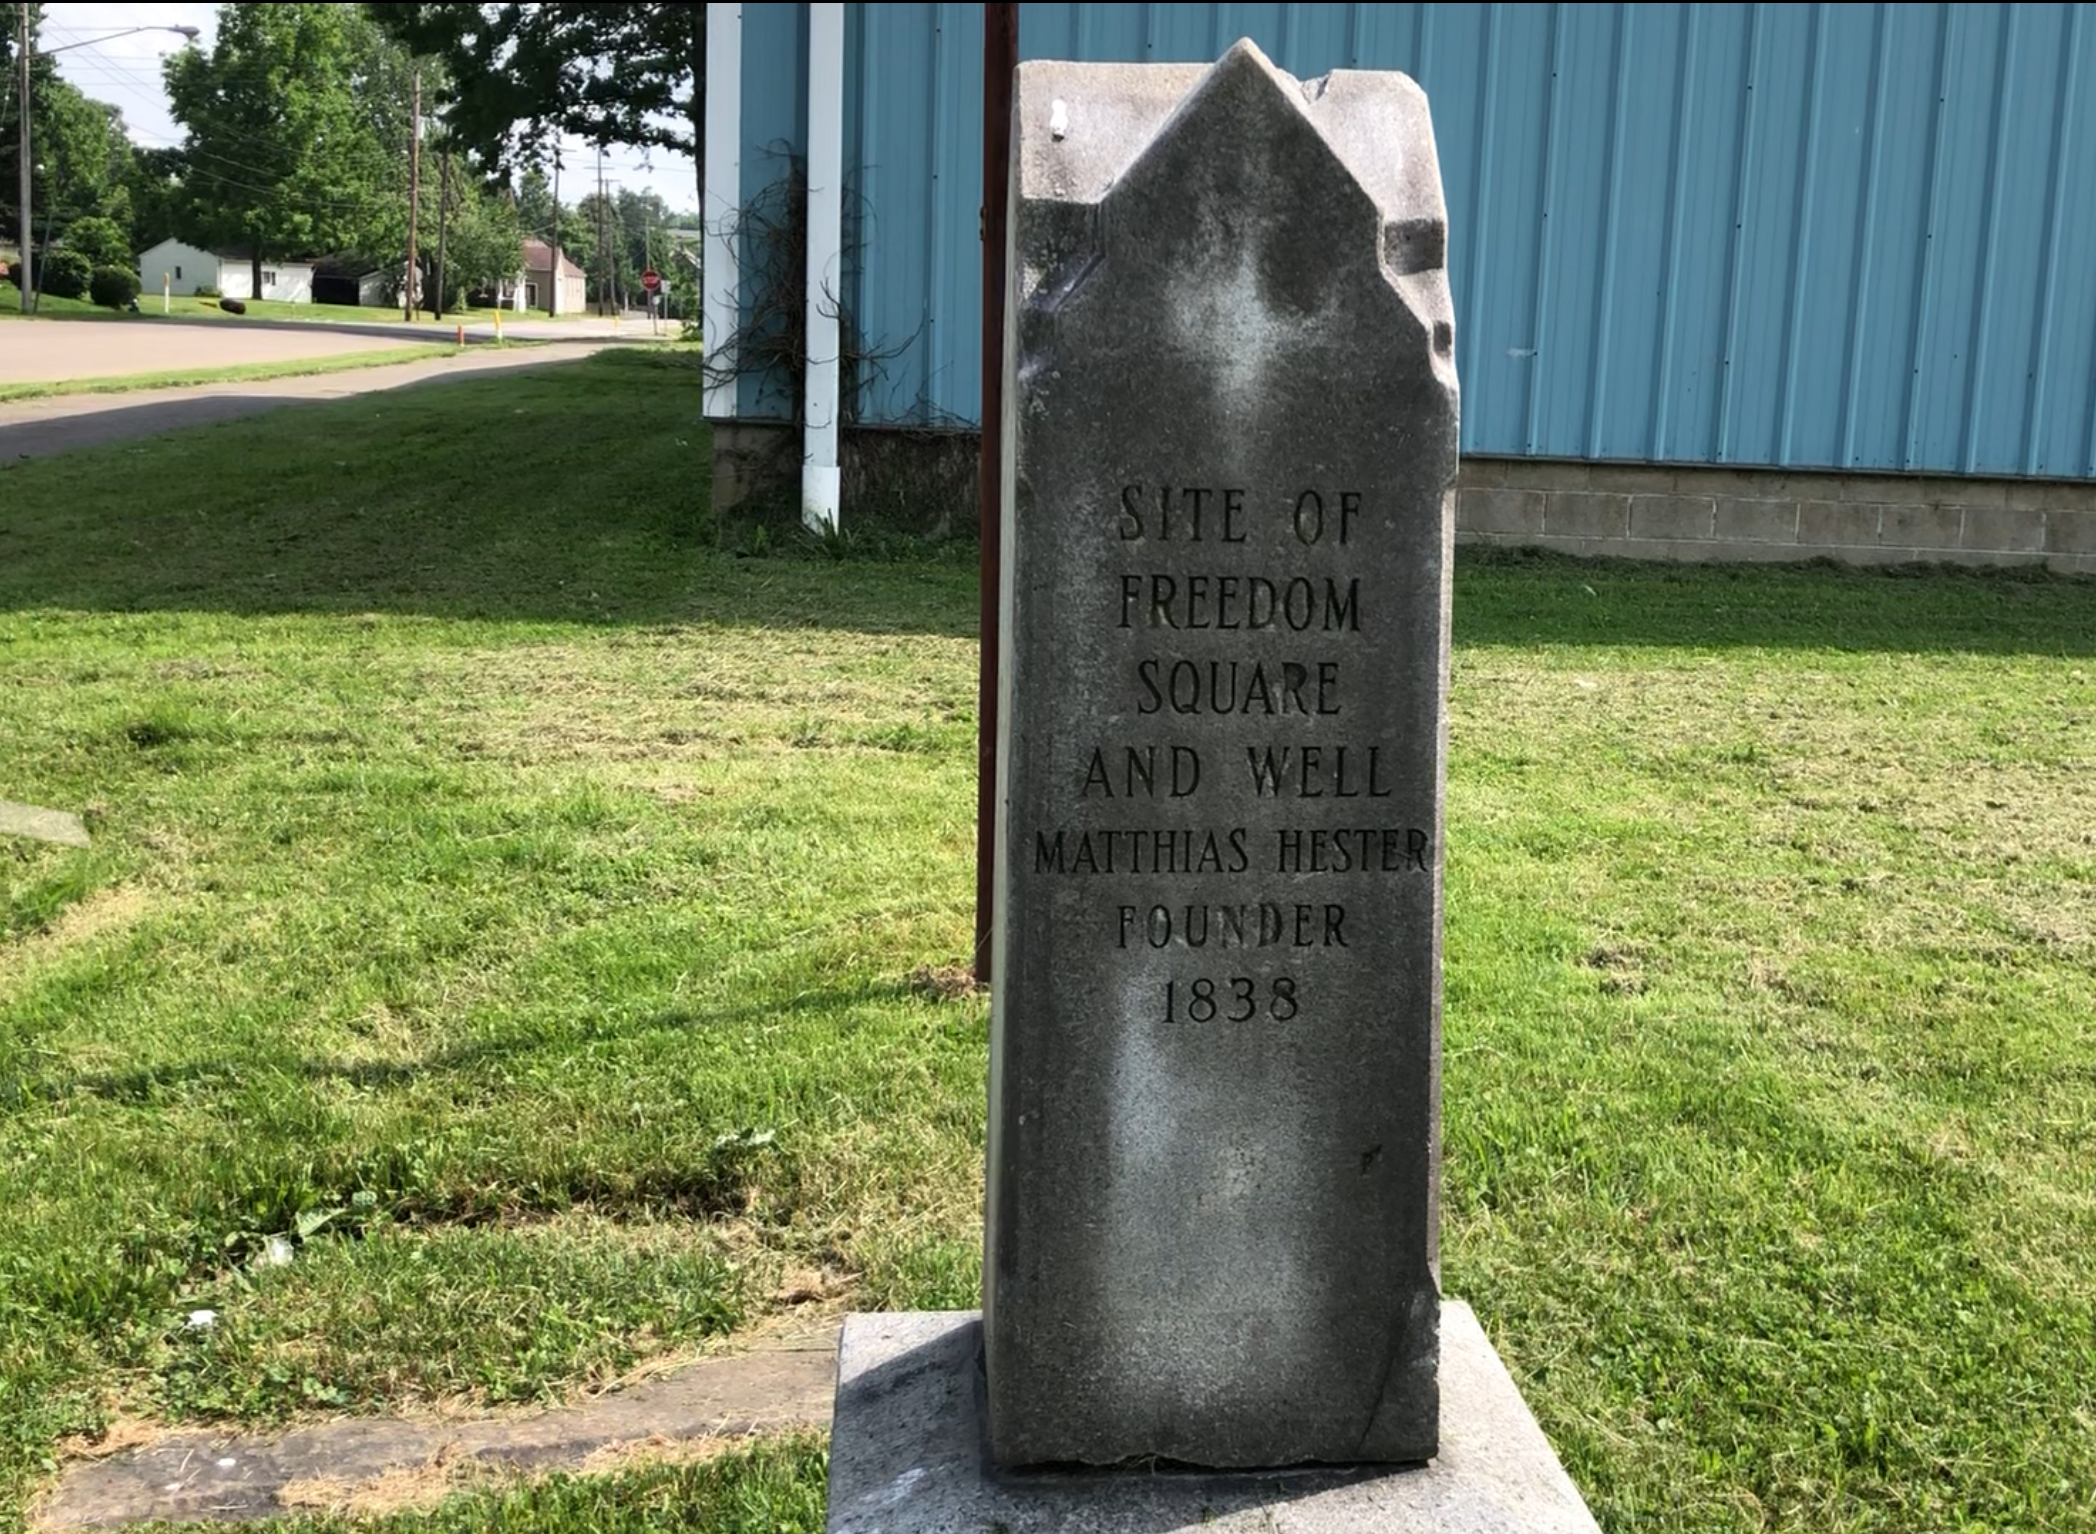 The marker on the southwest corner of Keystone Street and N. Park Avenue commemorates the Freedom village square. The village well can be seen beside the marker.